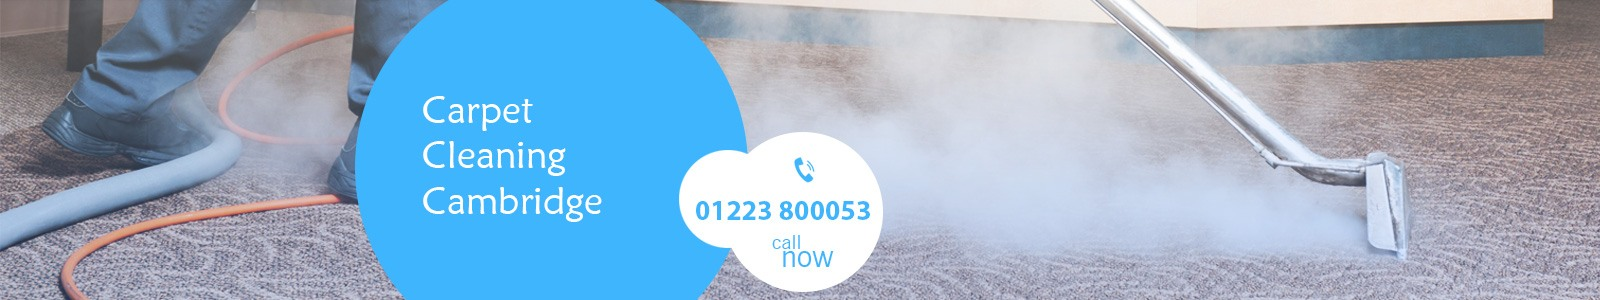 carpet-cleaning-cambridge